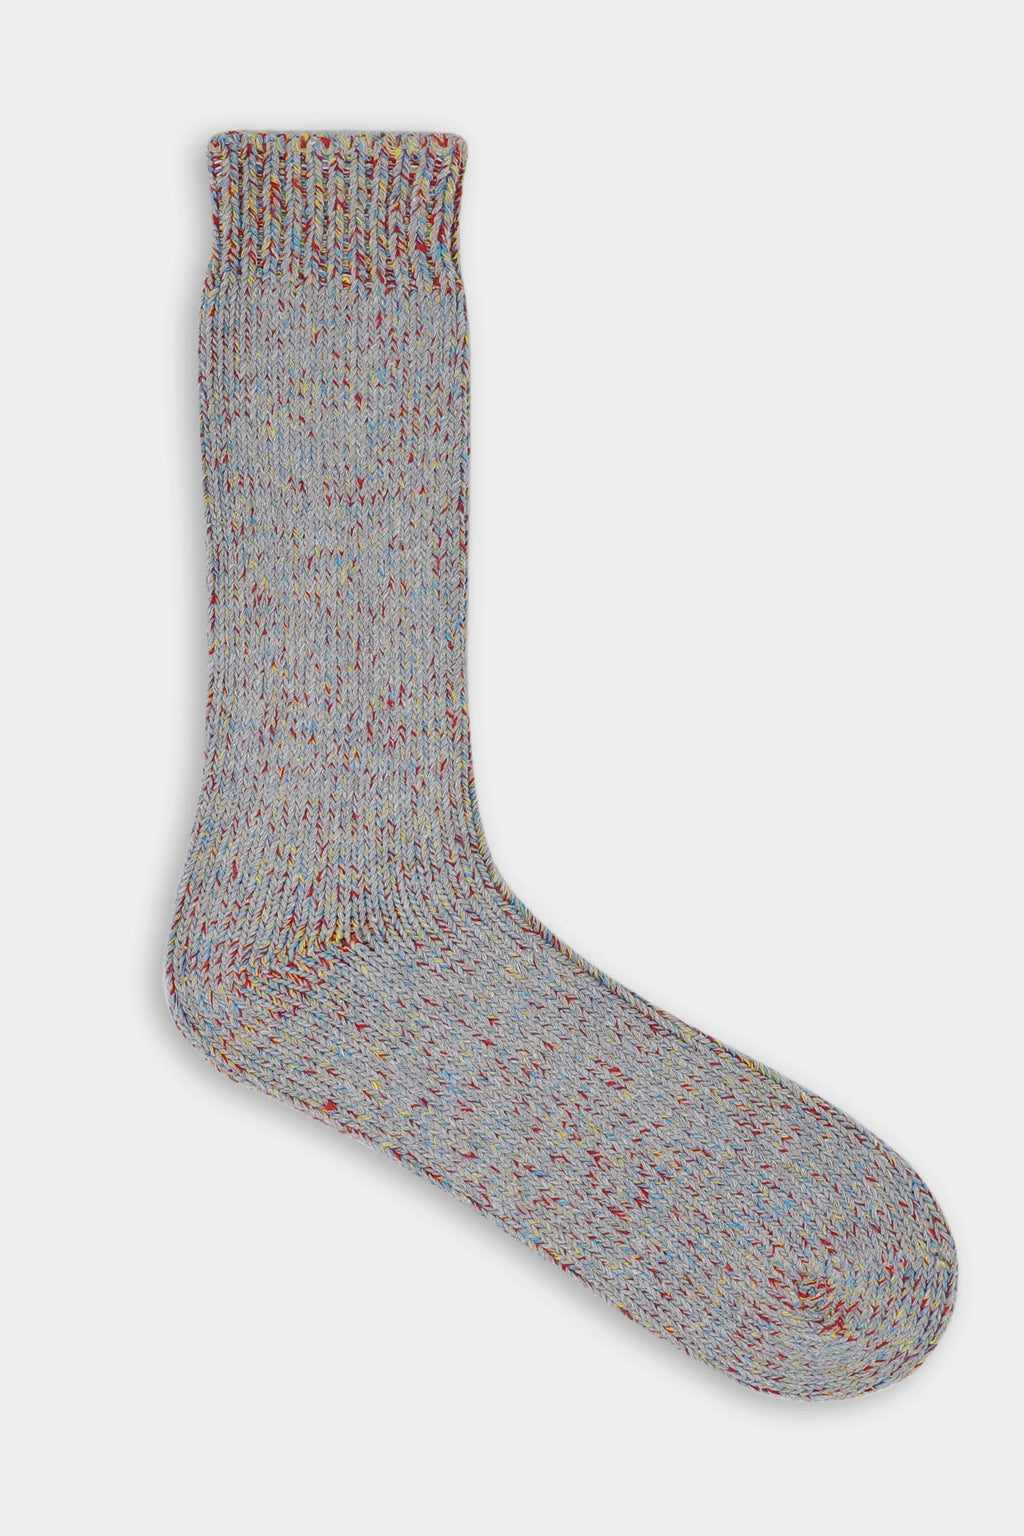 Thunders Love Mens Bobby Socks - The Mercantile London